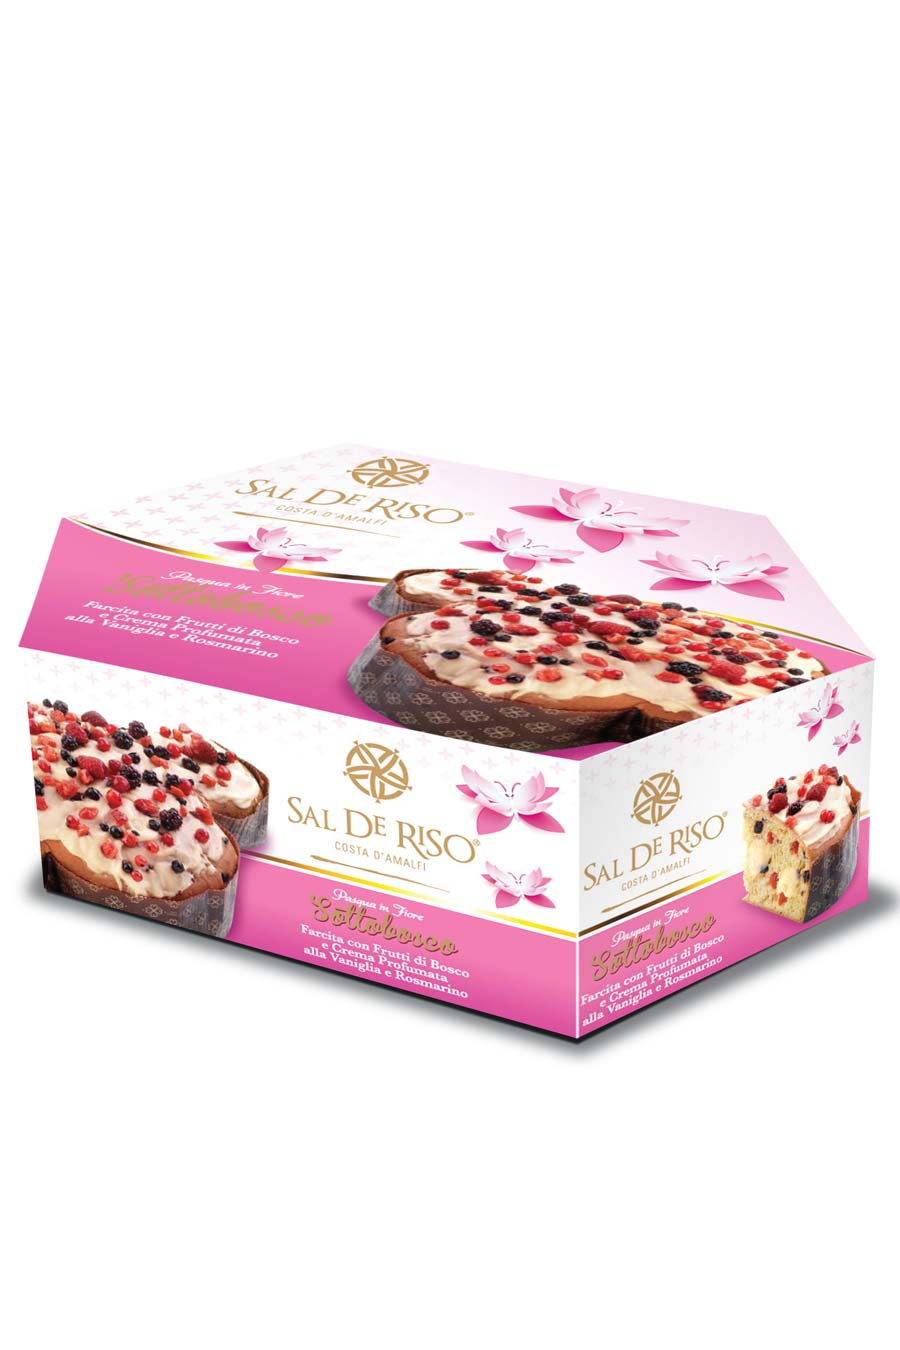 Sal De Riso Wild Berries Easter Colomba Sottobosco